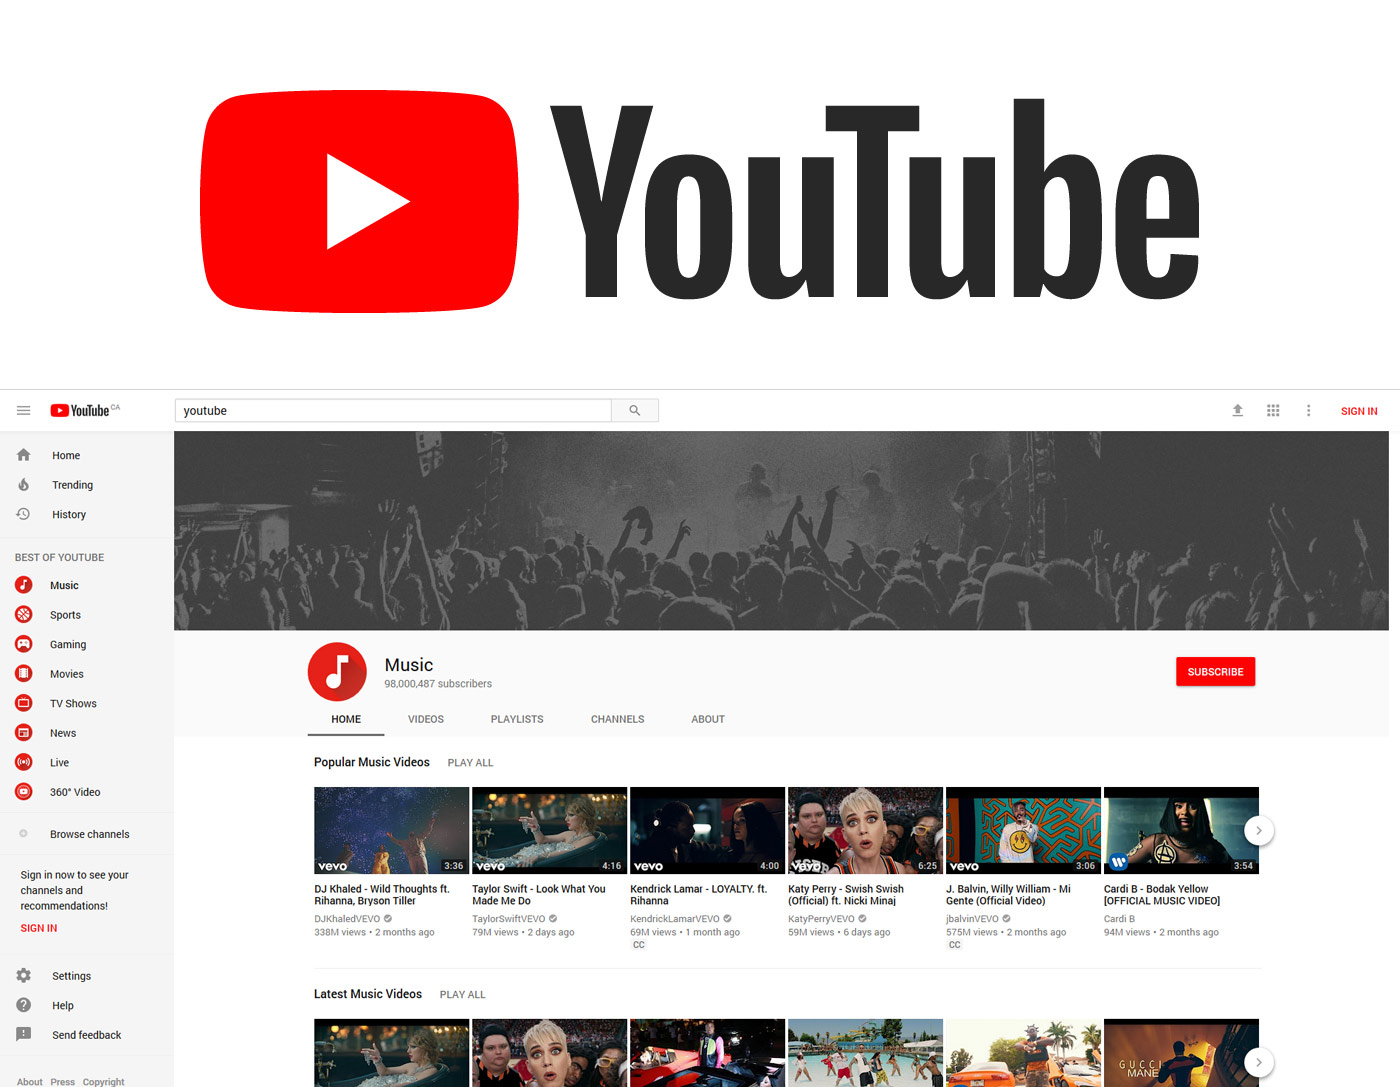 YouTube updates its logo and interface.